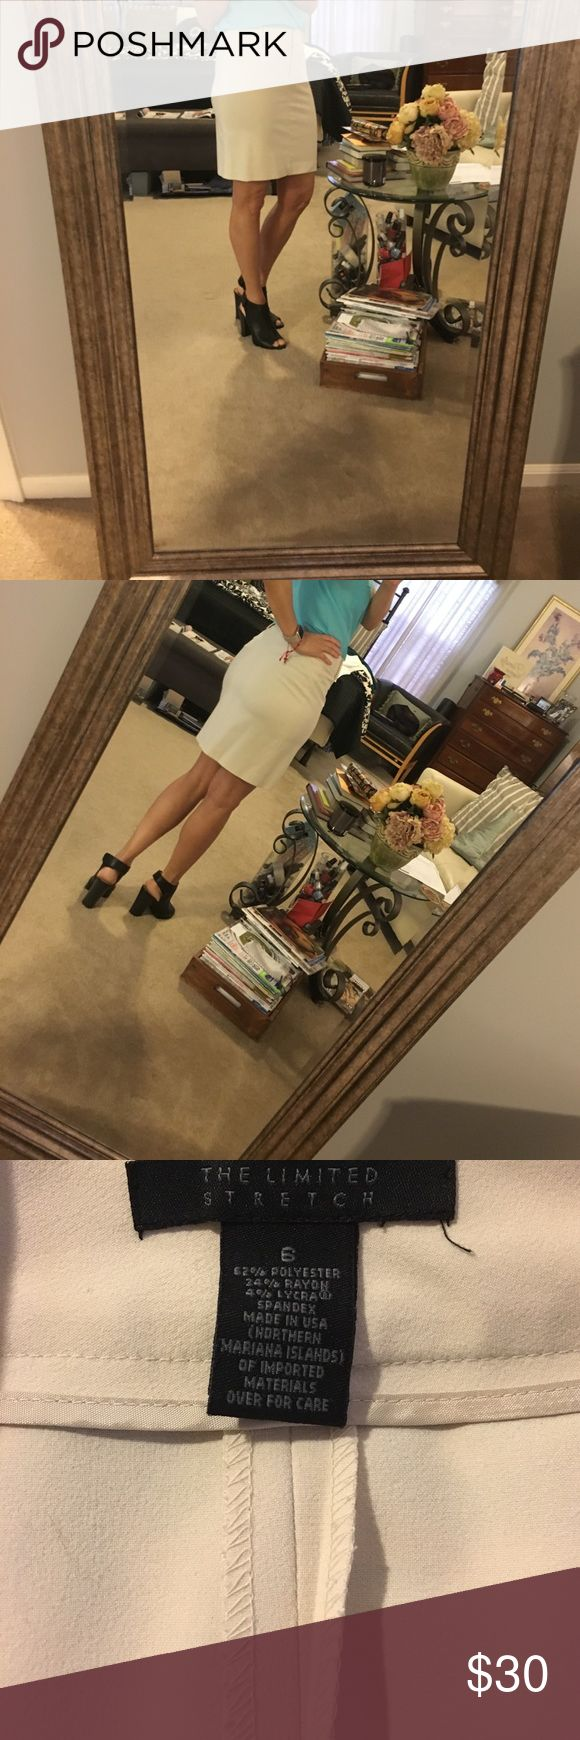 """The limited stretch skirt off white/cream The limited stretch skirt off white/cream. Size 6. 18"""" long The Limited Skirts"""